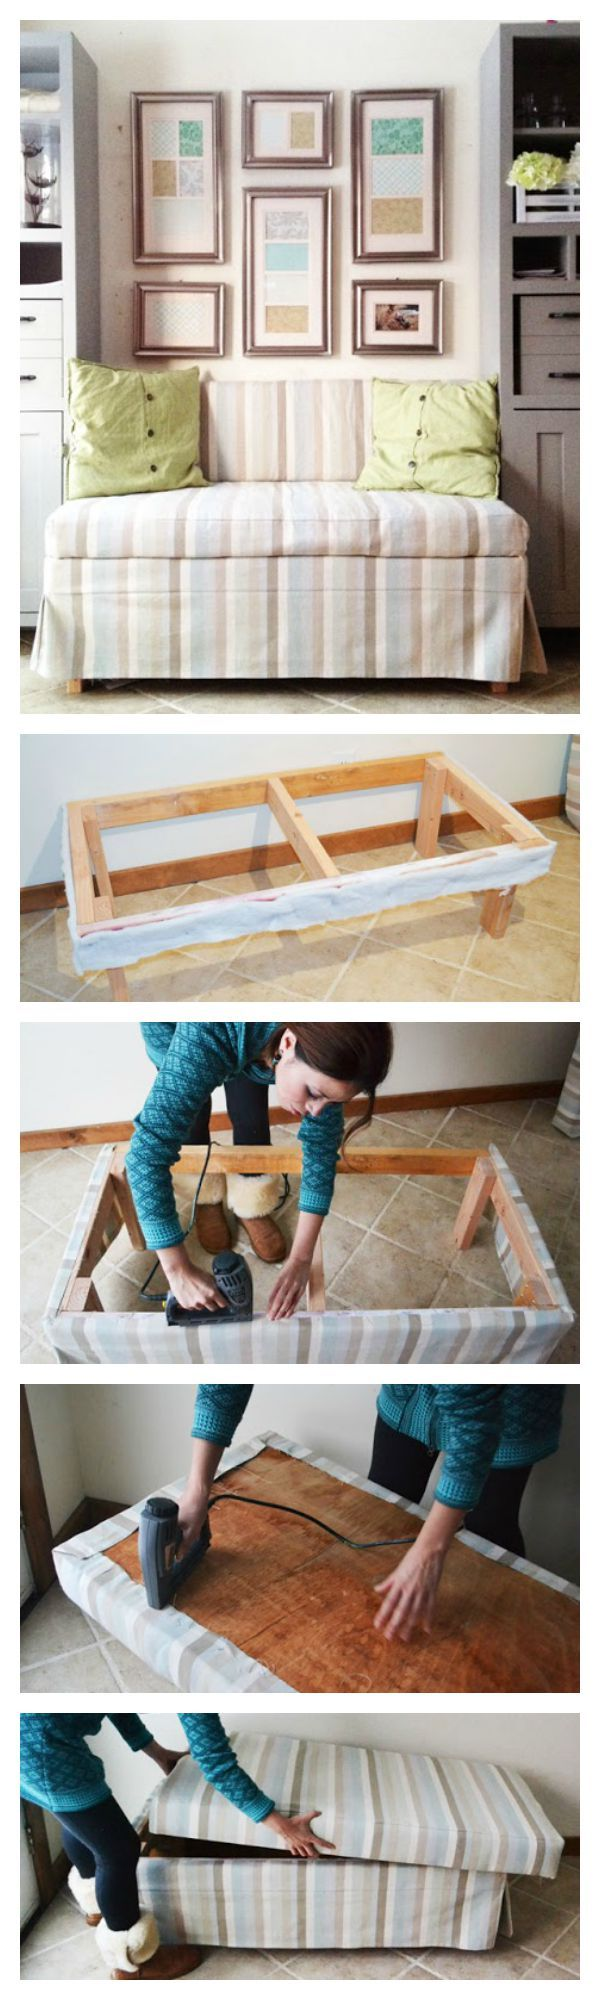 Ana White | Build a 2x4 Upholstered Banquette Seat | Free and Easy DIY Project and Furniture Plans